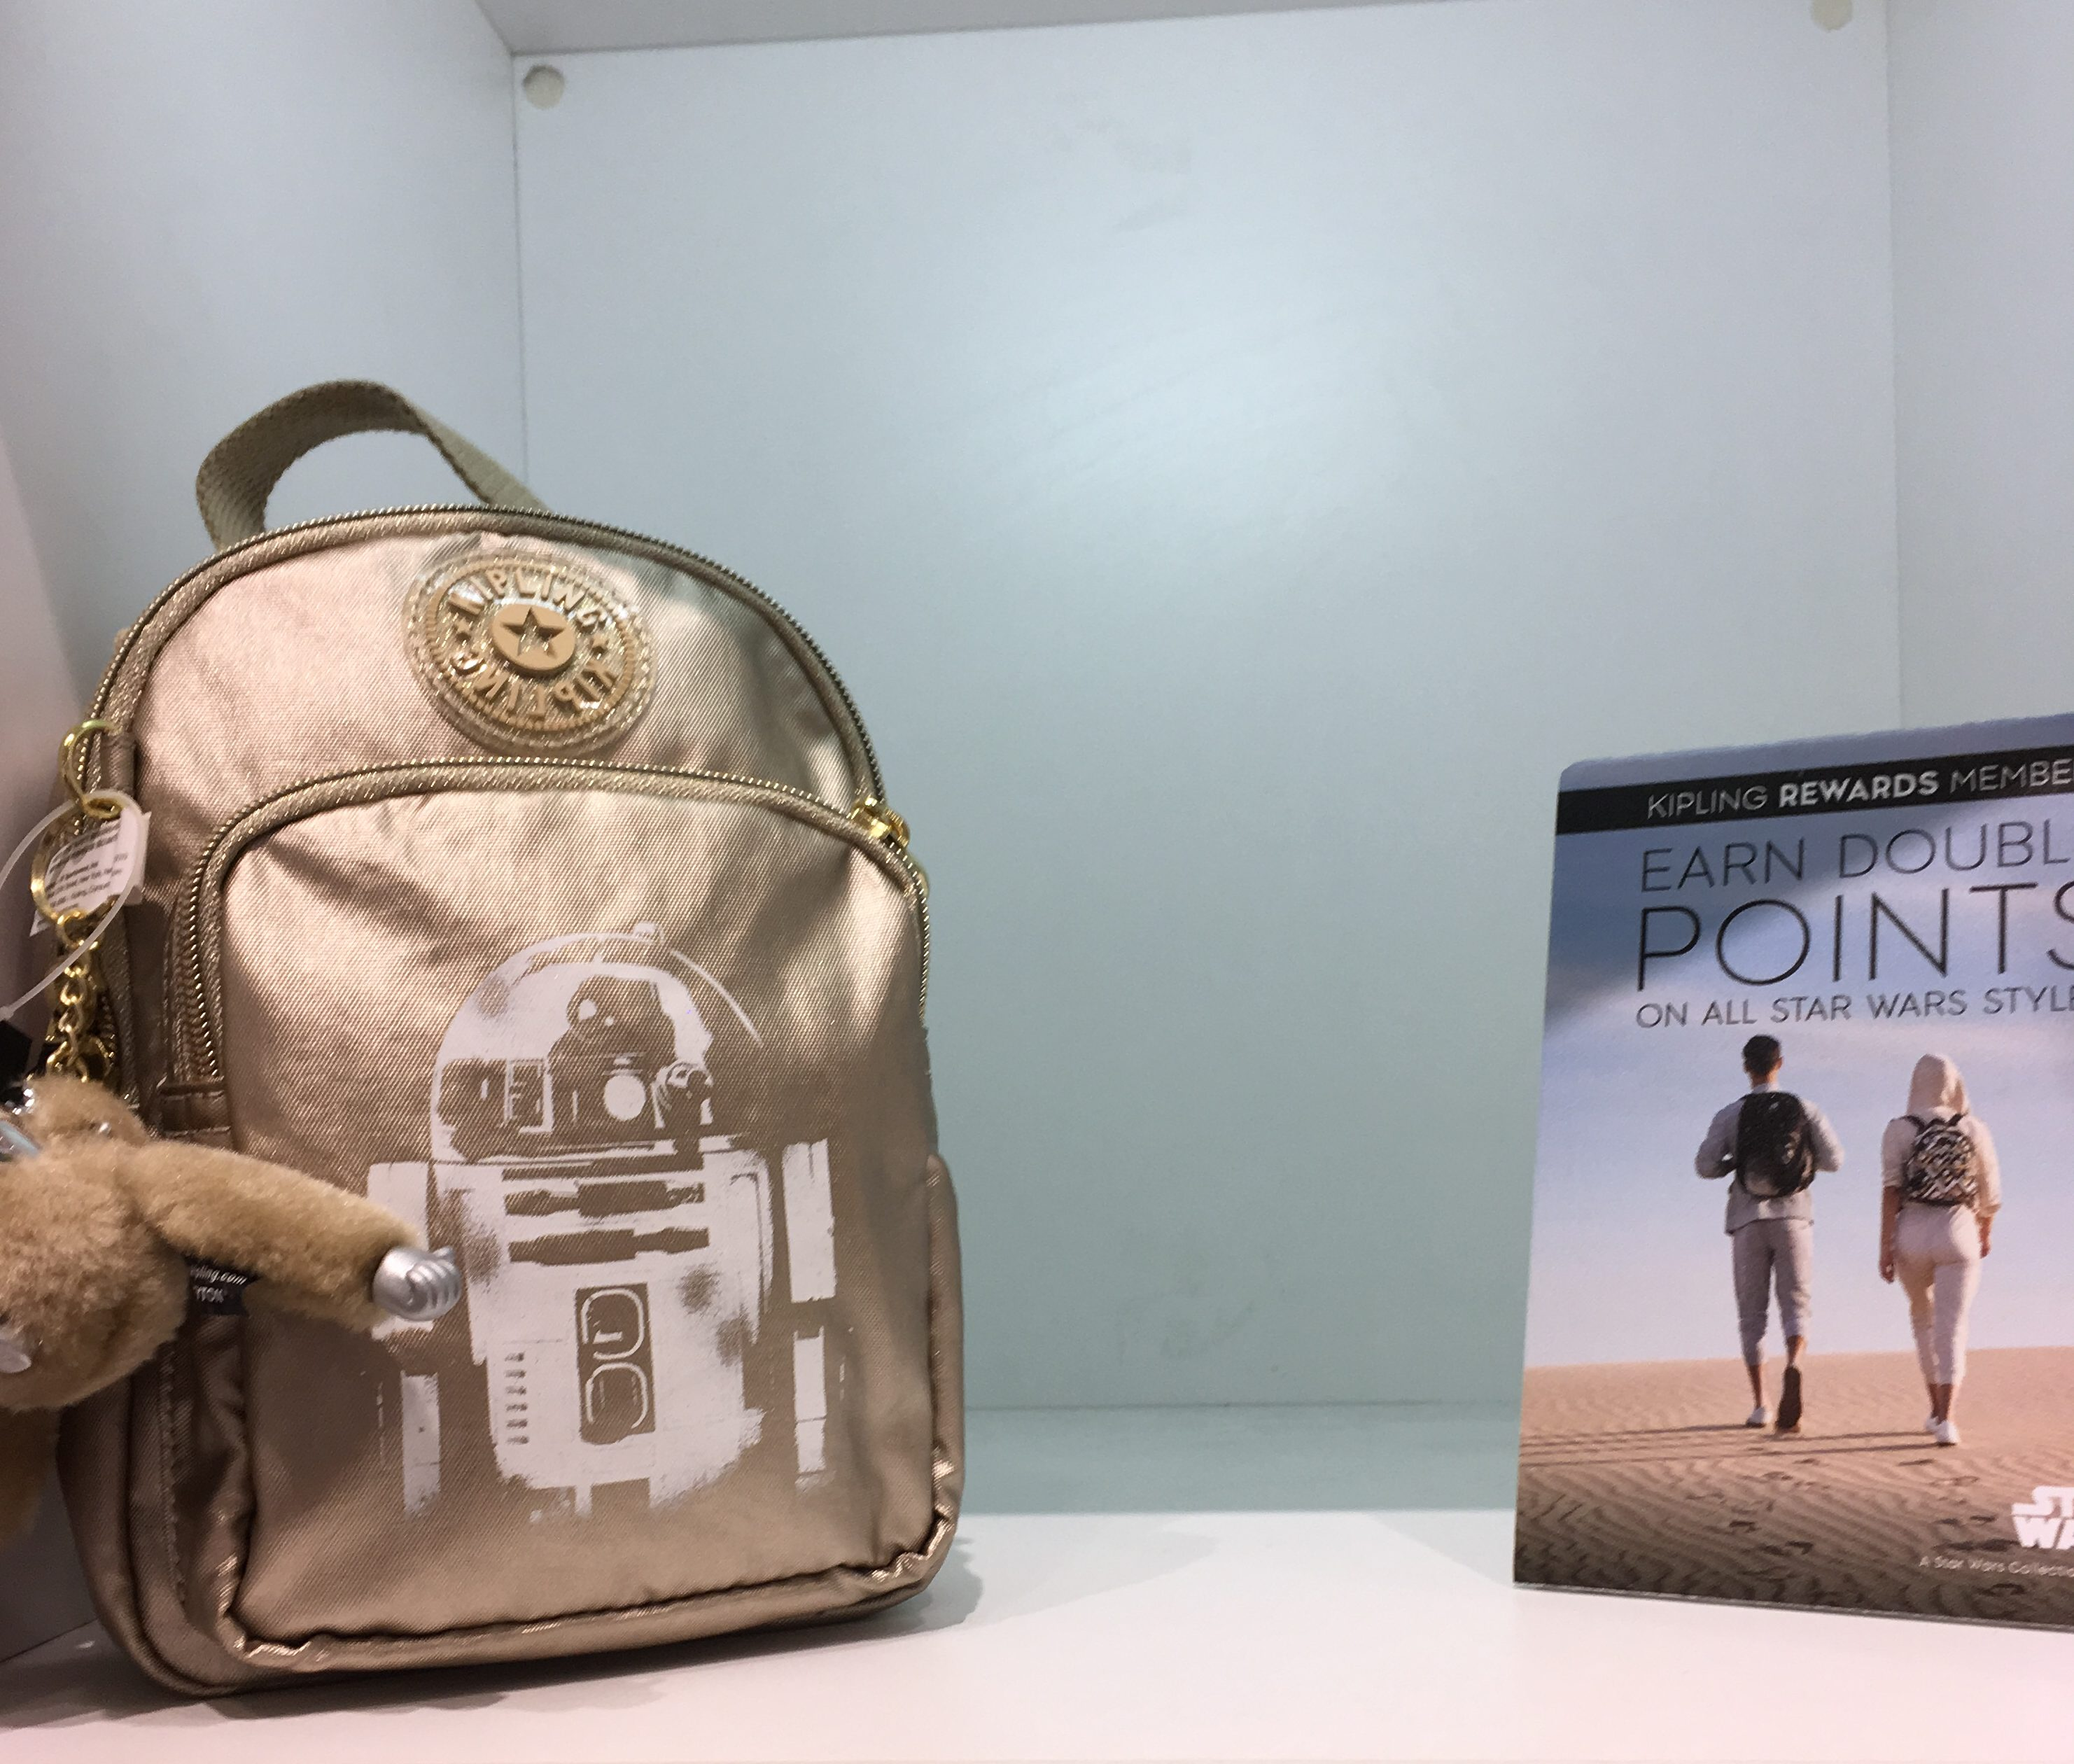 889198fd88d The premium line brand have an exclusive range of bags in different style  which embrace the galaxy far